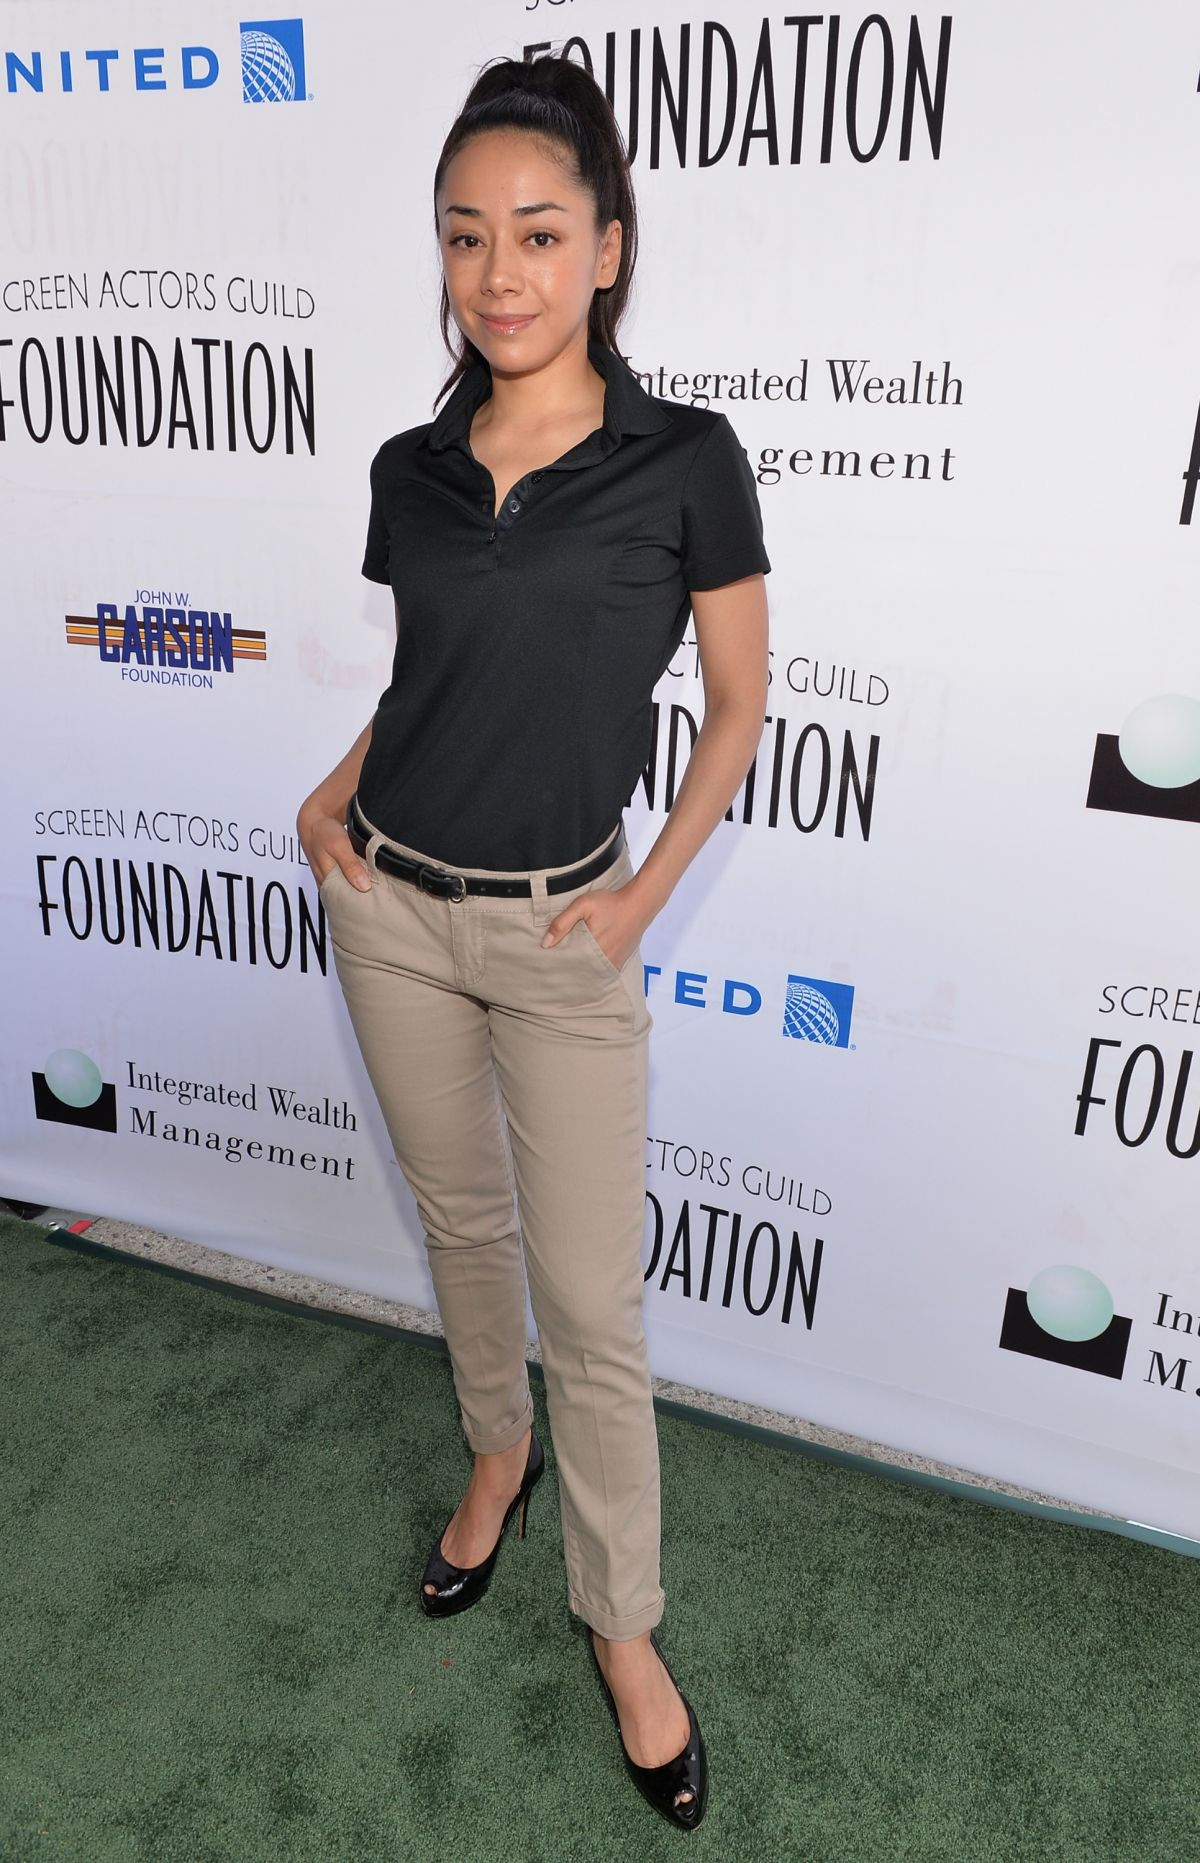 Forum on this topic: Margaret Judson, aimee-garcia/